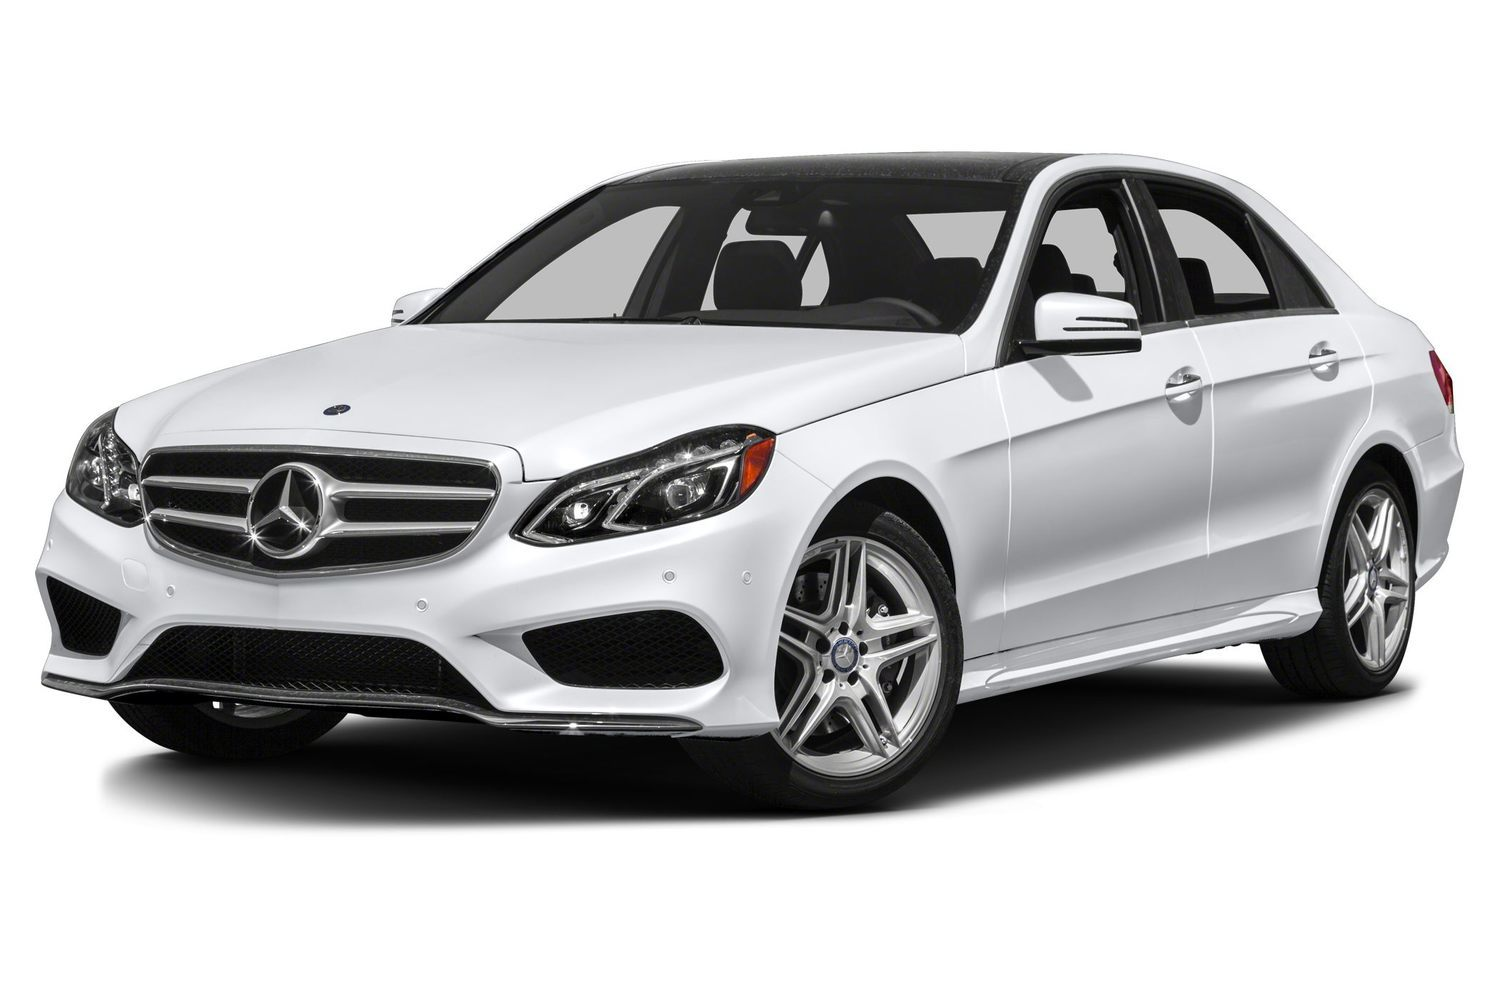 "<span style=""font-weight: bold;"">MERSEDES BENZ E-class</span>"